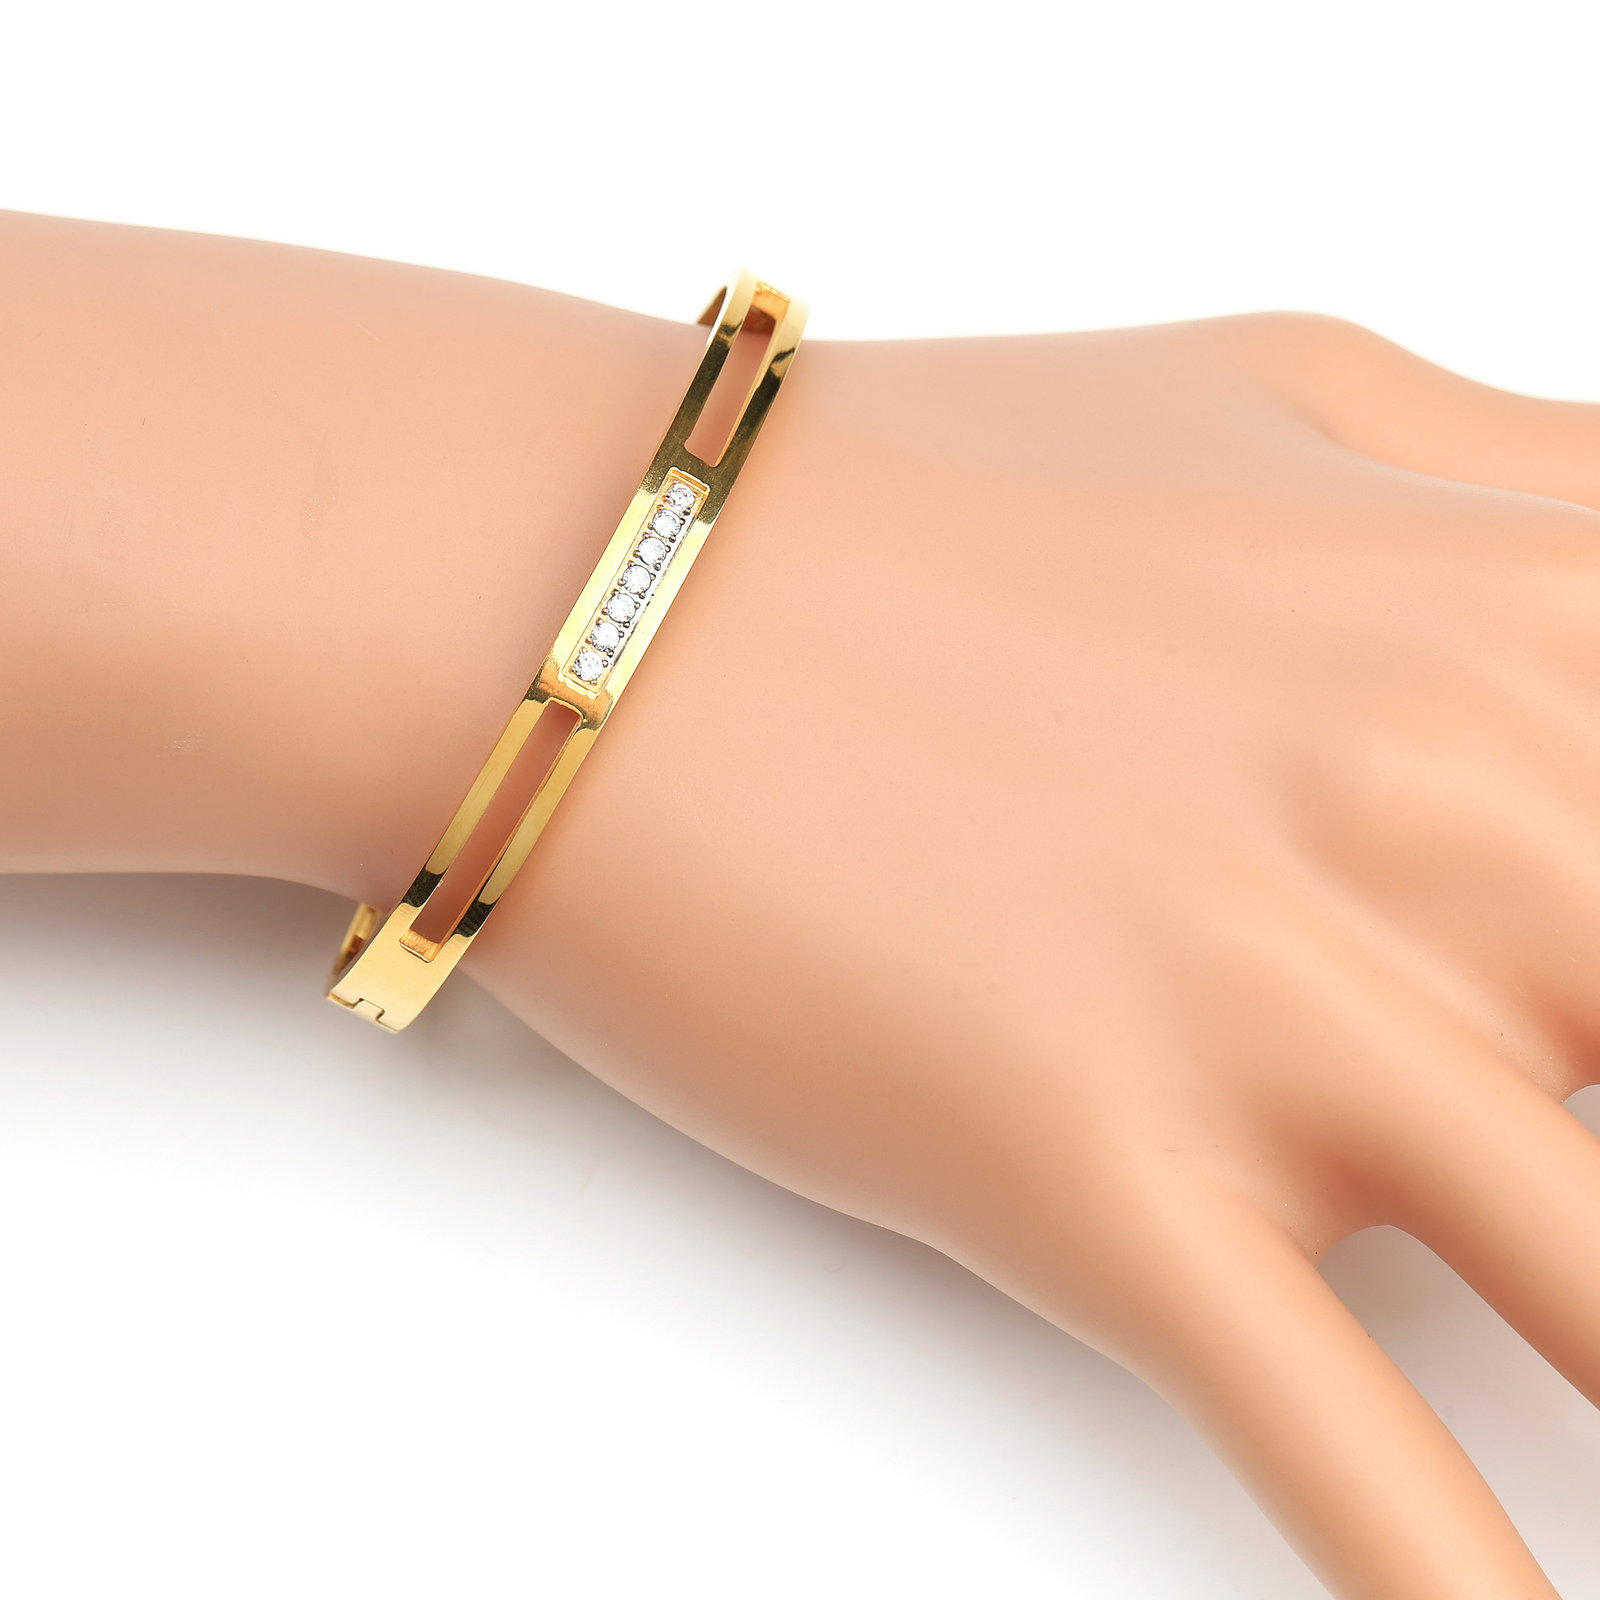 Primary image for UE- Stylish Gold Tone Designer Bangle Bracelet With Swarovski Style Crystals